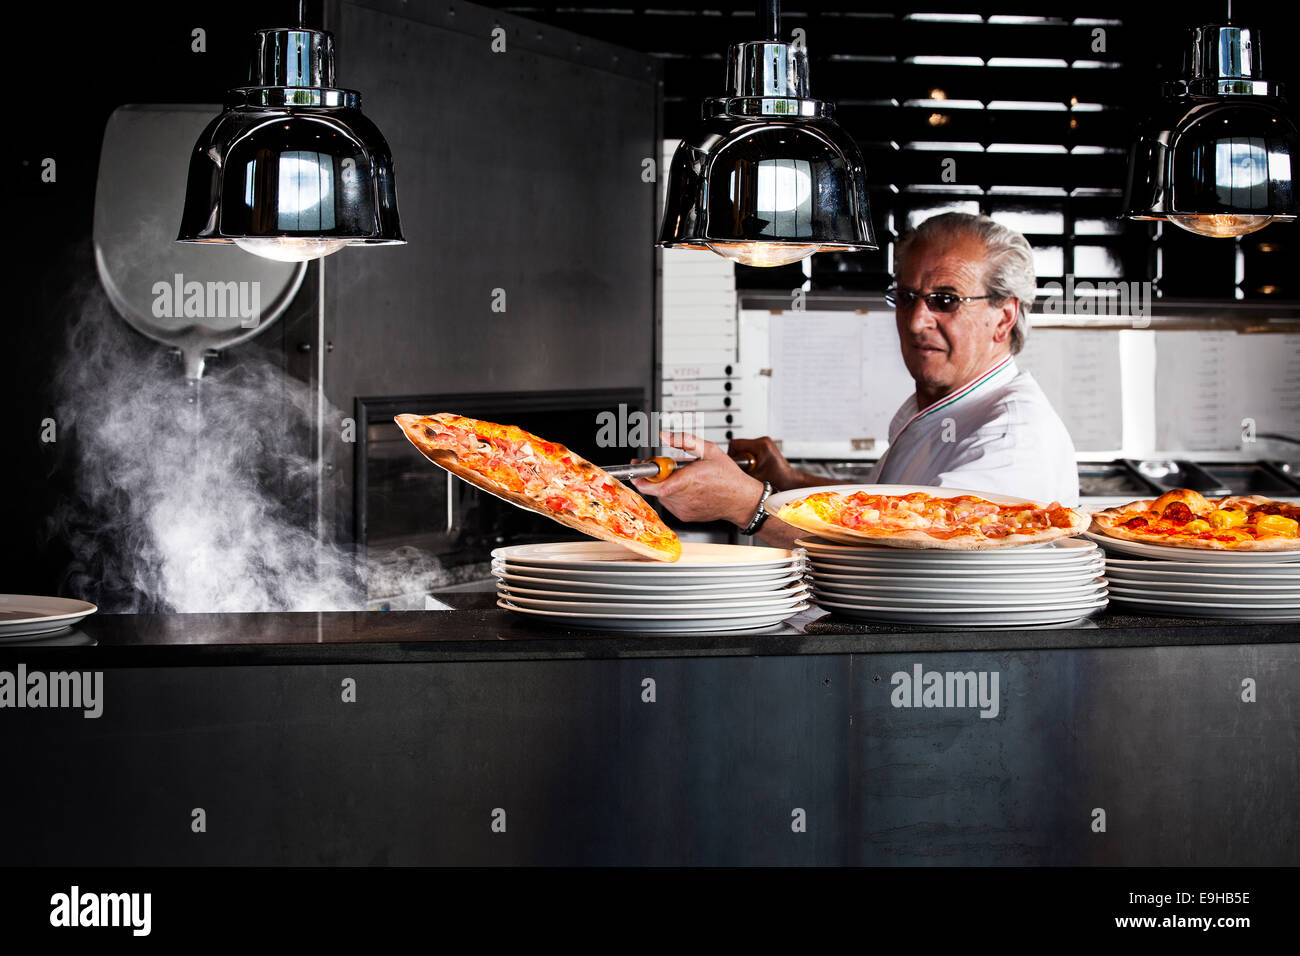 Pizza baker taking the finished pizza out of the oven with a pizza shovel - Stock Image